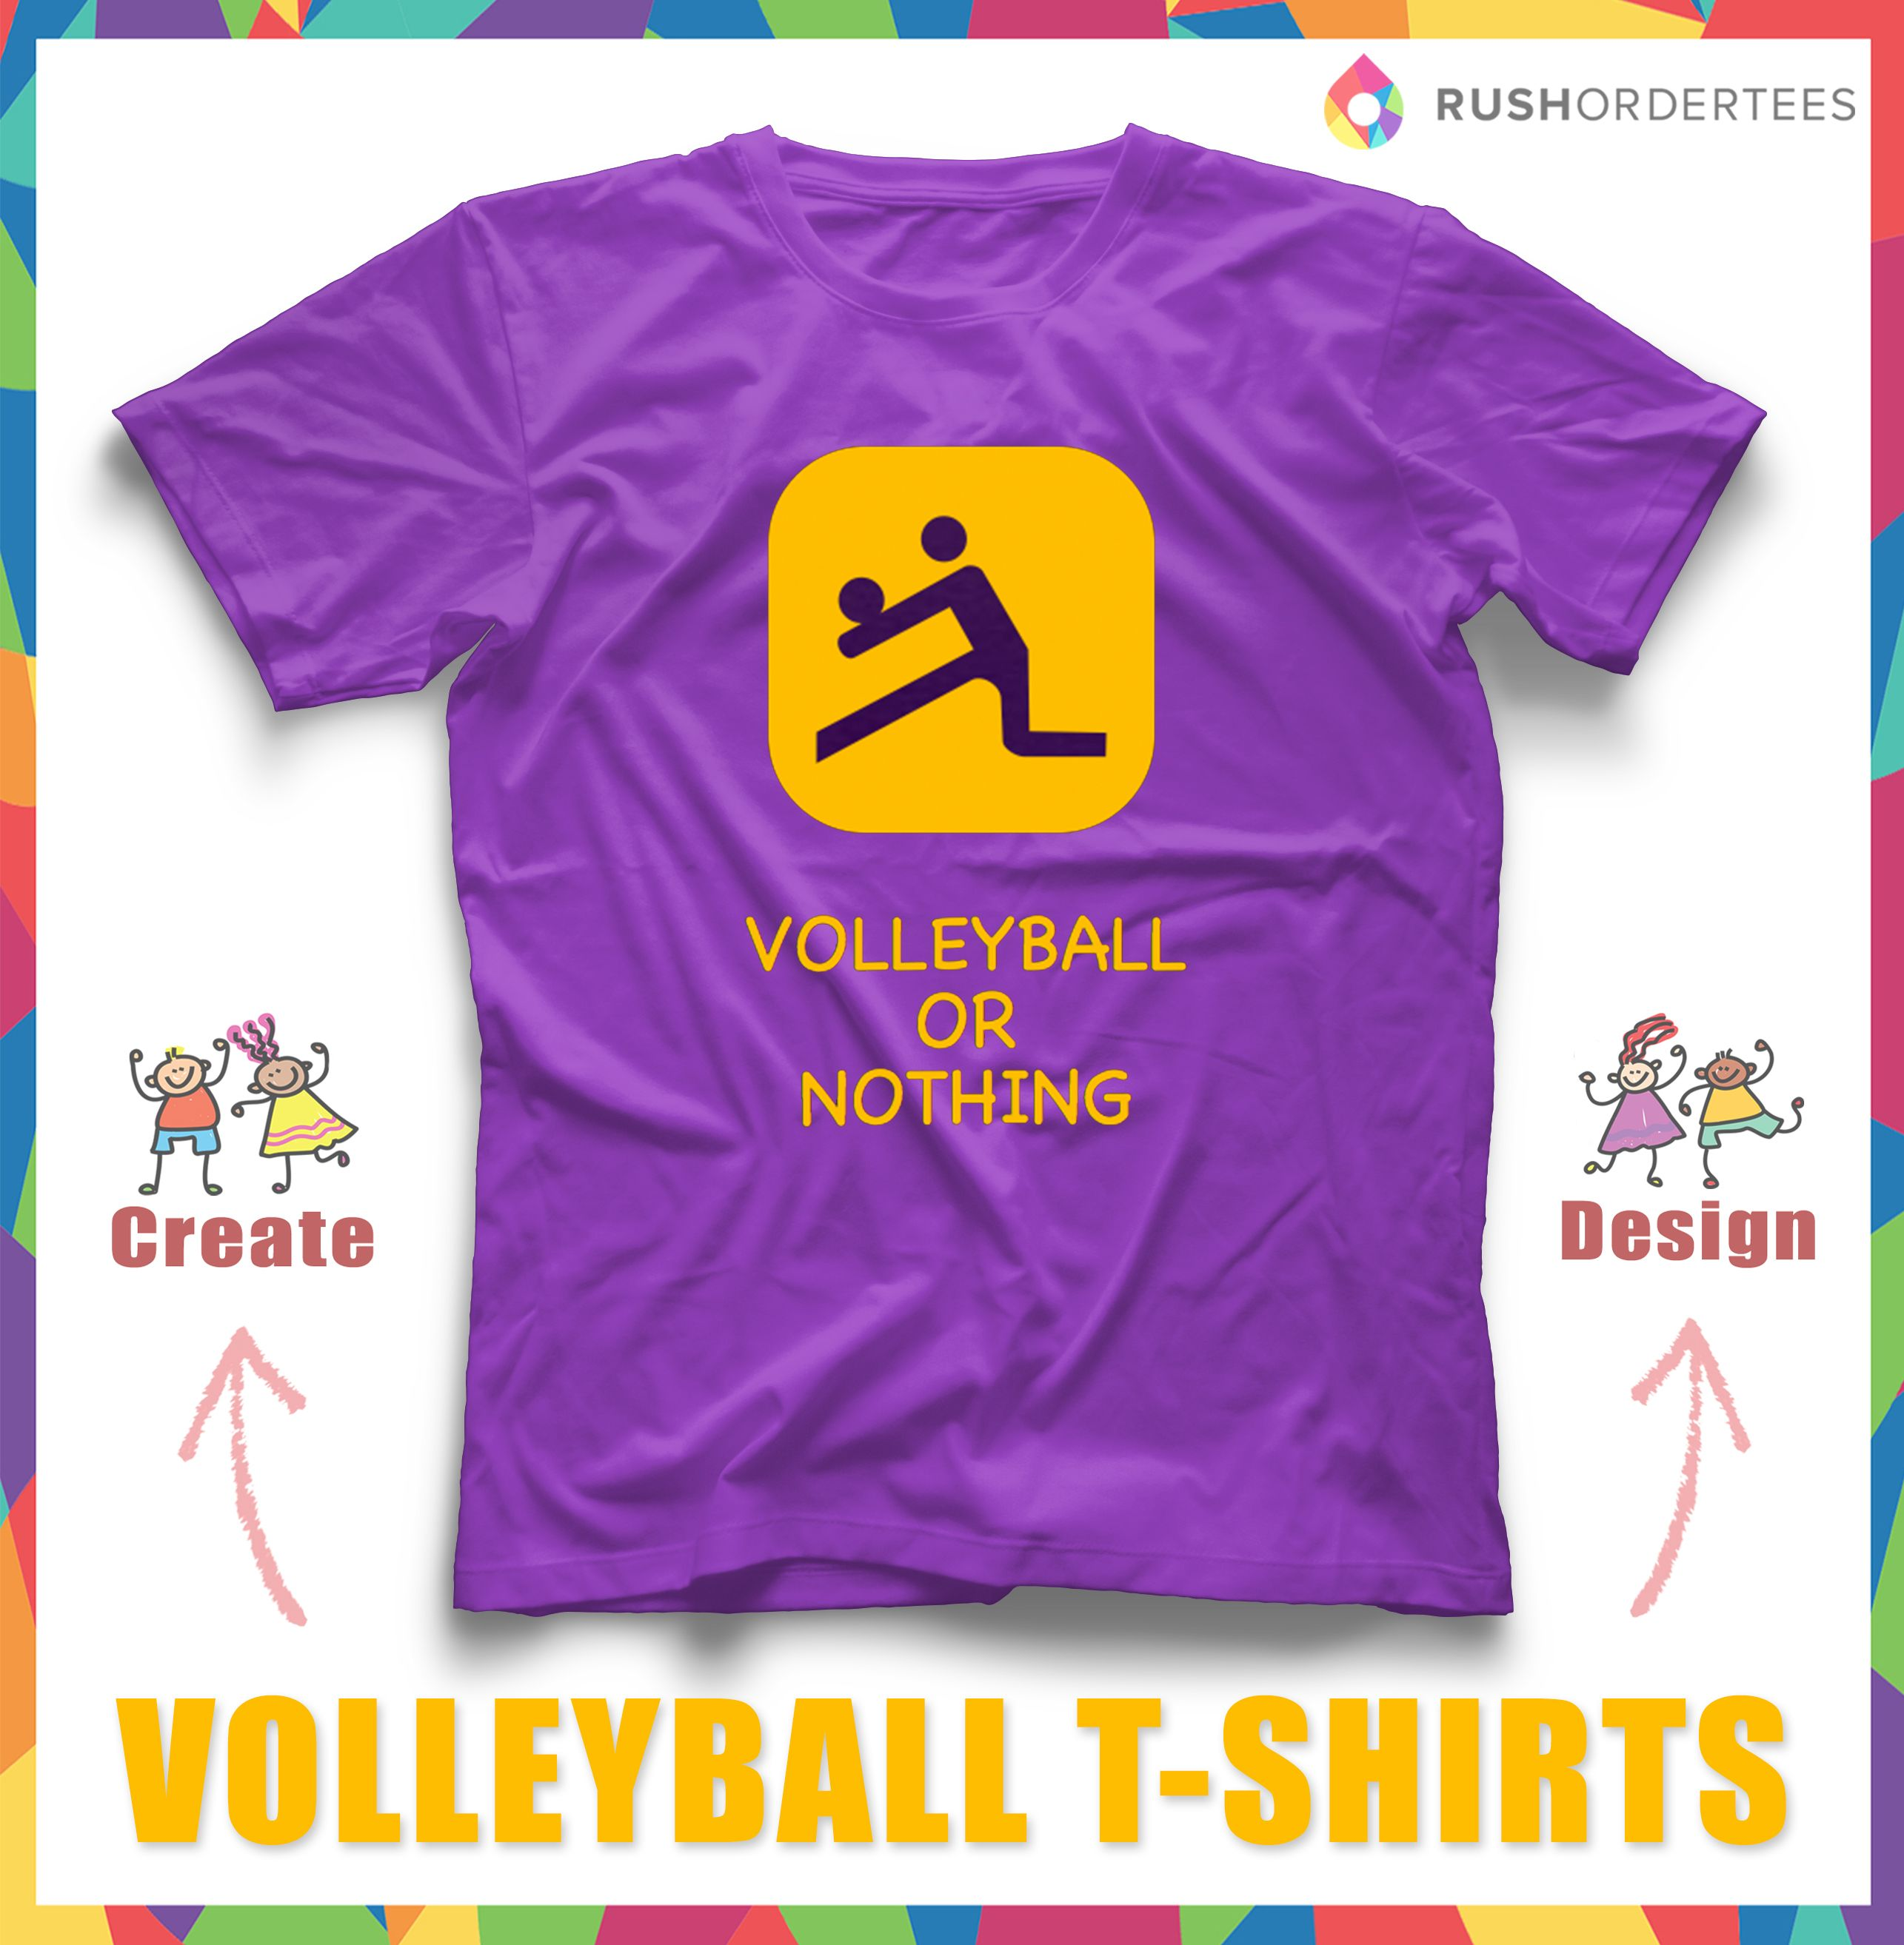 Volleyball Custom T Shirt Design That You Can Customize Free And